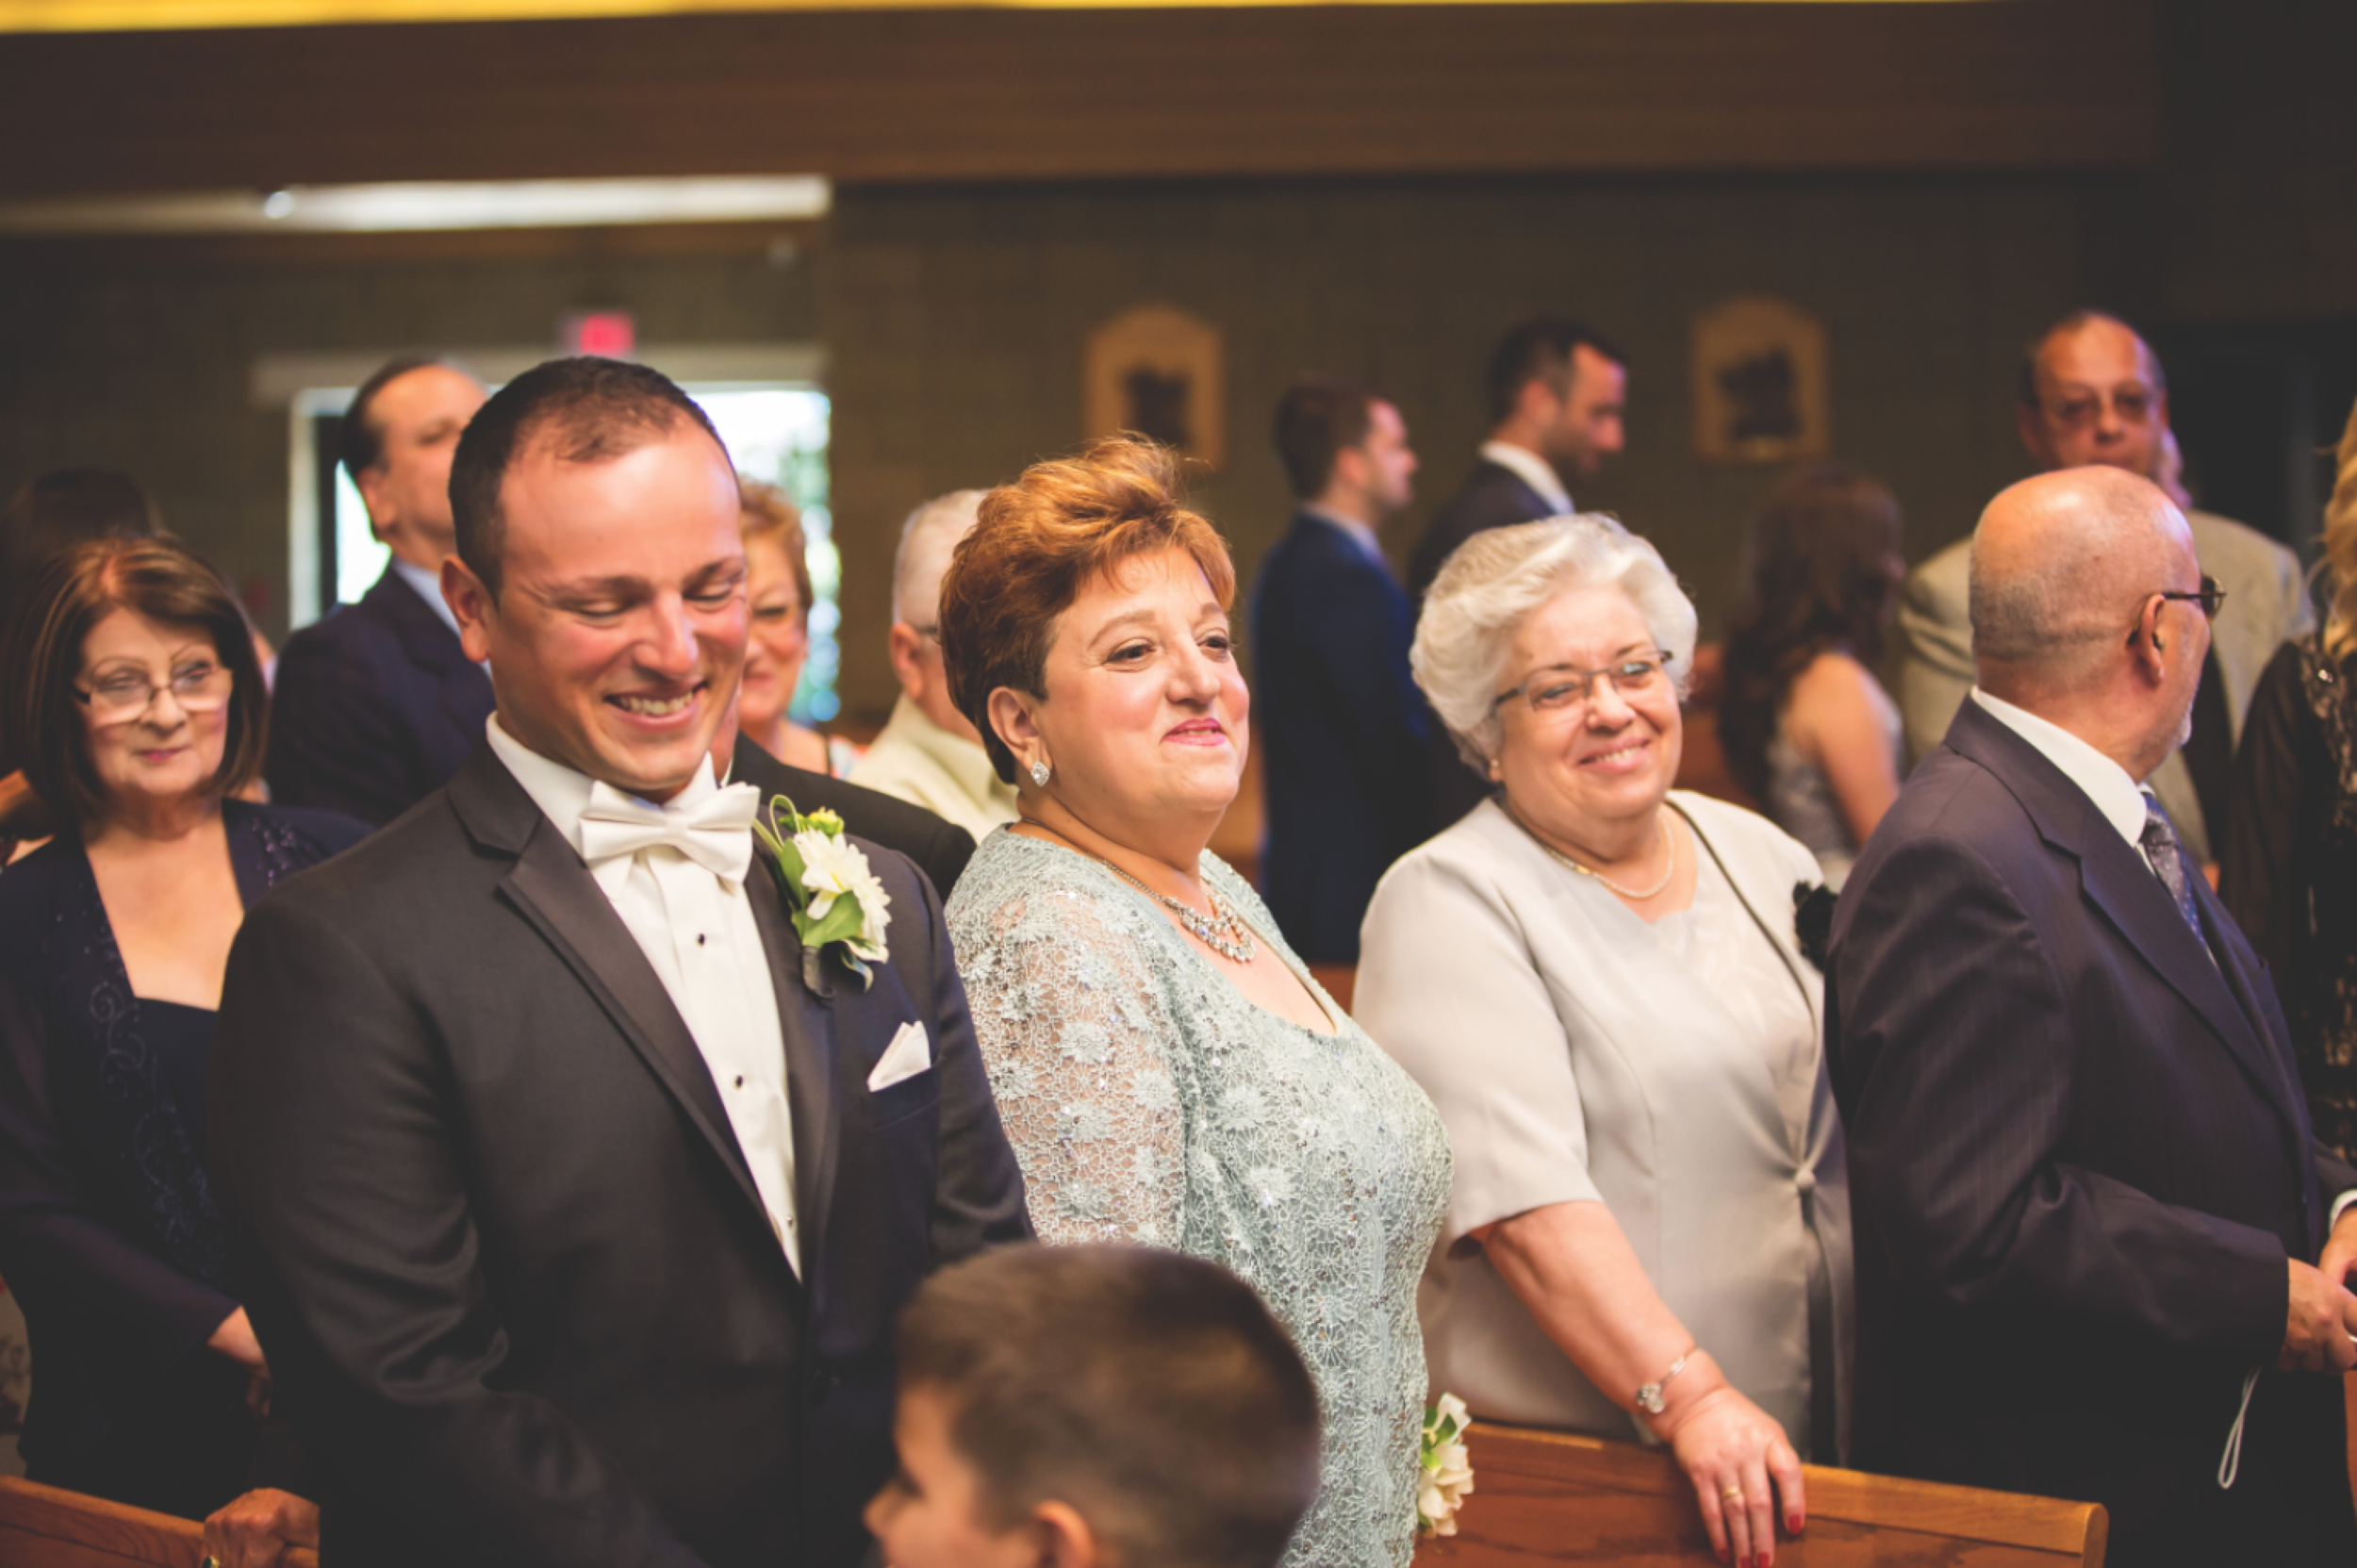 Wedding-Photography-Hamilton-Burlington-Oakville-Toronto-Niagara-Photographer-Moments-by-Lauren-Michaelangelos-Banquet-Center-Photos-HamOnt-Bride-Groom-Image-20.png